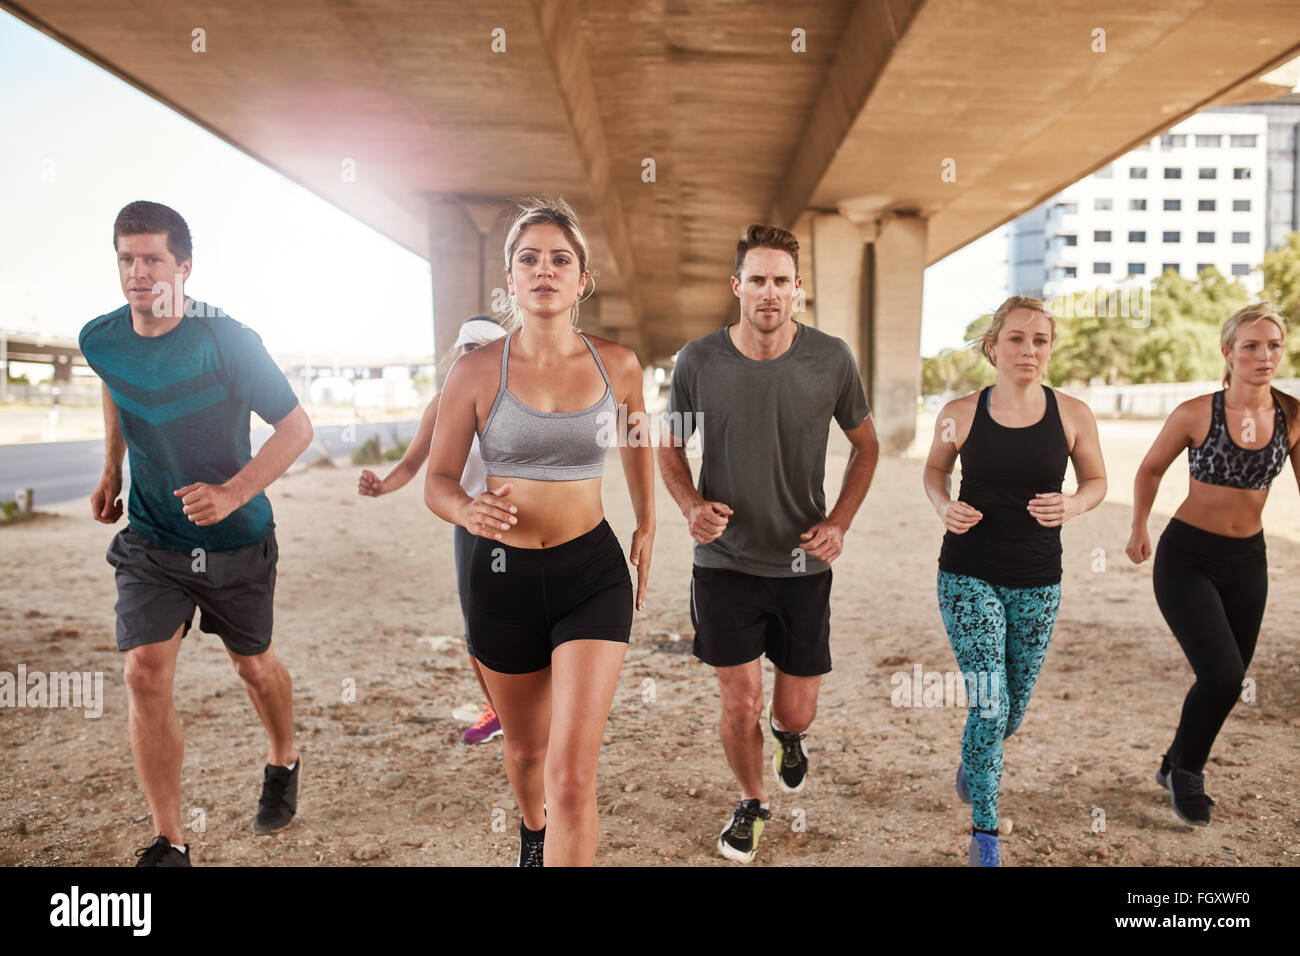 Determined group of athletes running. Runners in sportswear training together in the city. - Stock Image